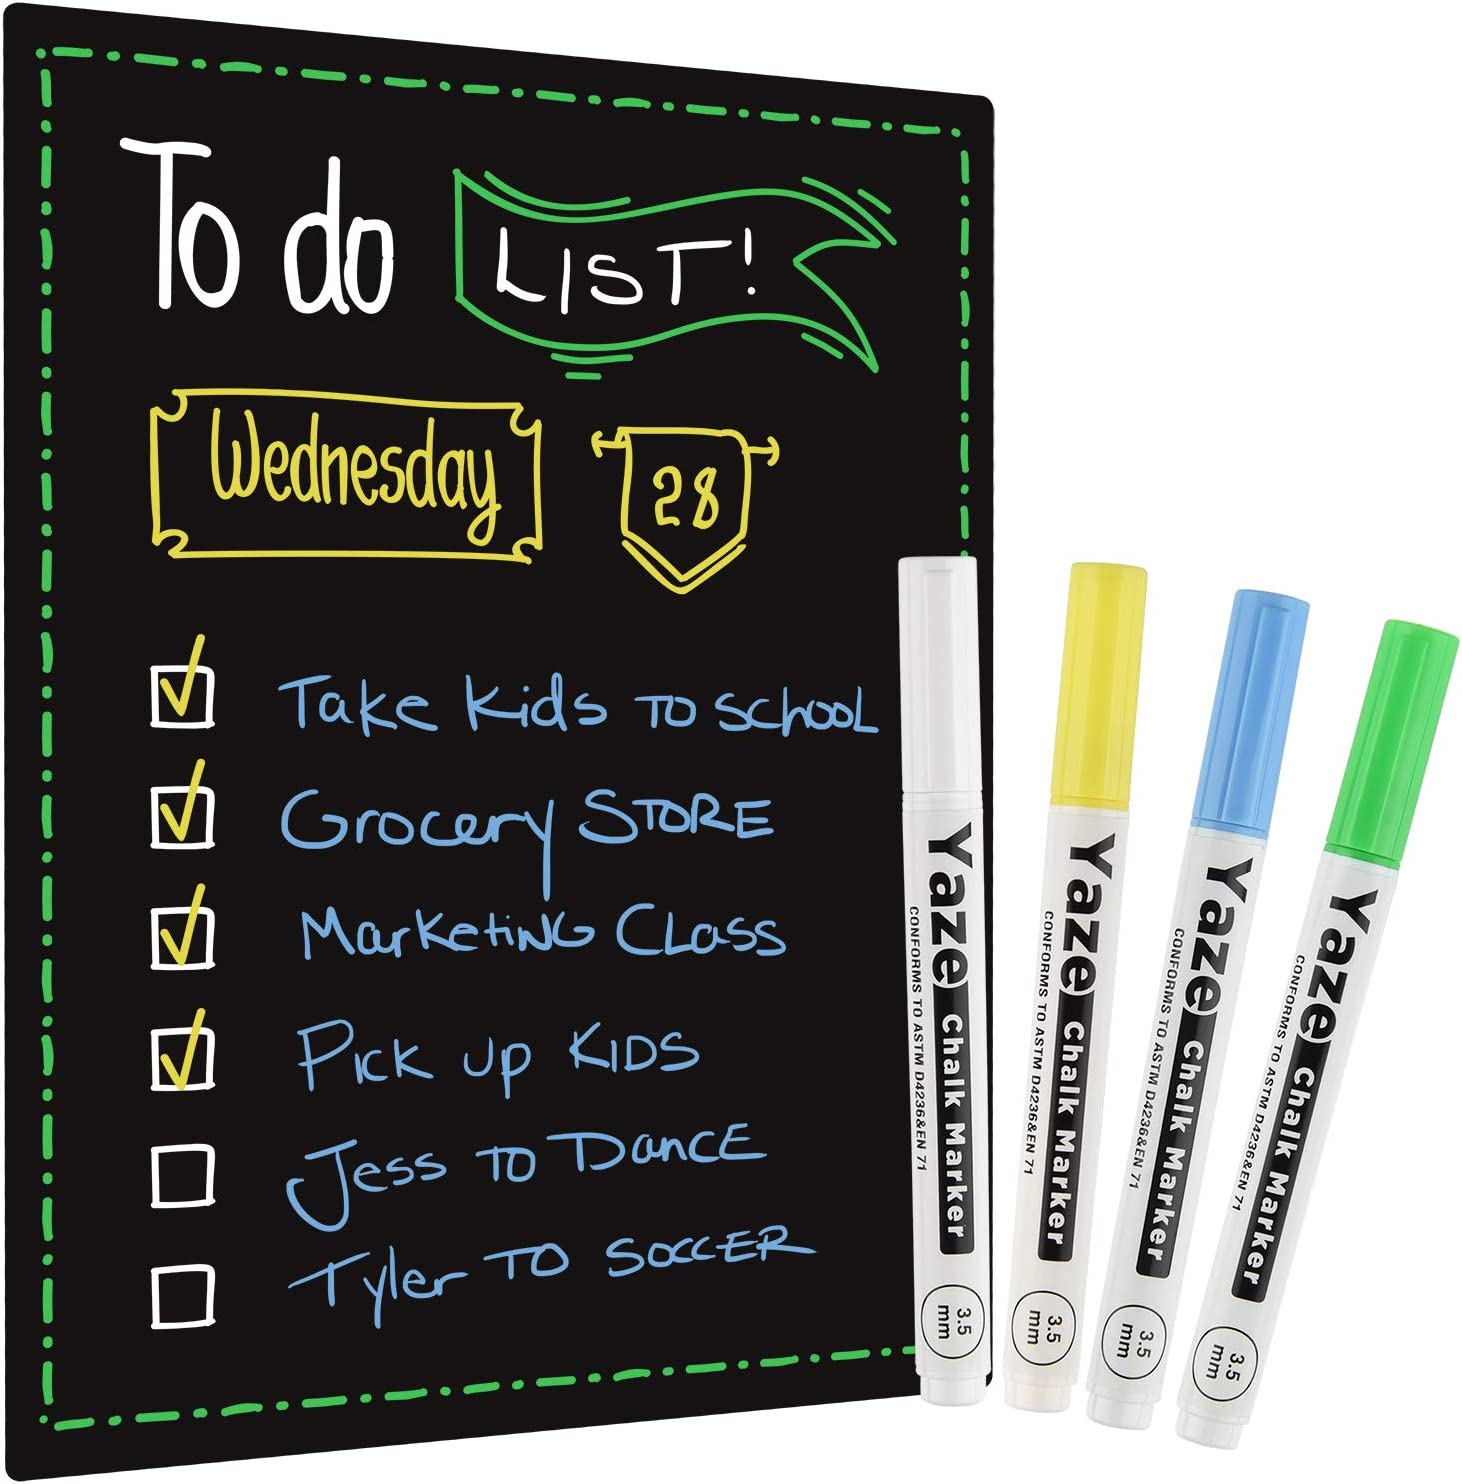 "Magnetic Dry Erase Black Board for Refrigerator with Chalkboard Design - 17x12"" - Includes 4 Chalk Markers - Fridge Whiteboard Planner & Organizer with Strong Magnet - Perfect Magnetic Blackboard"